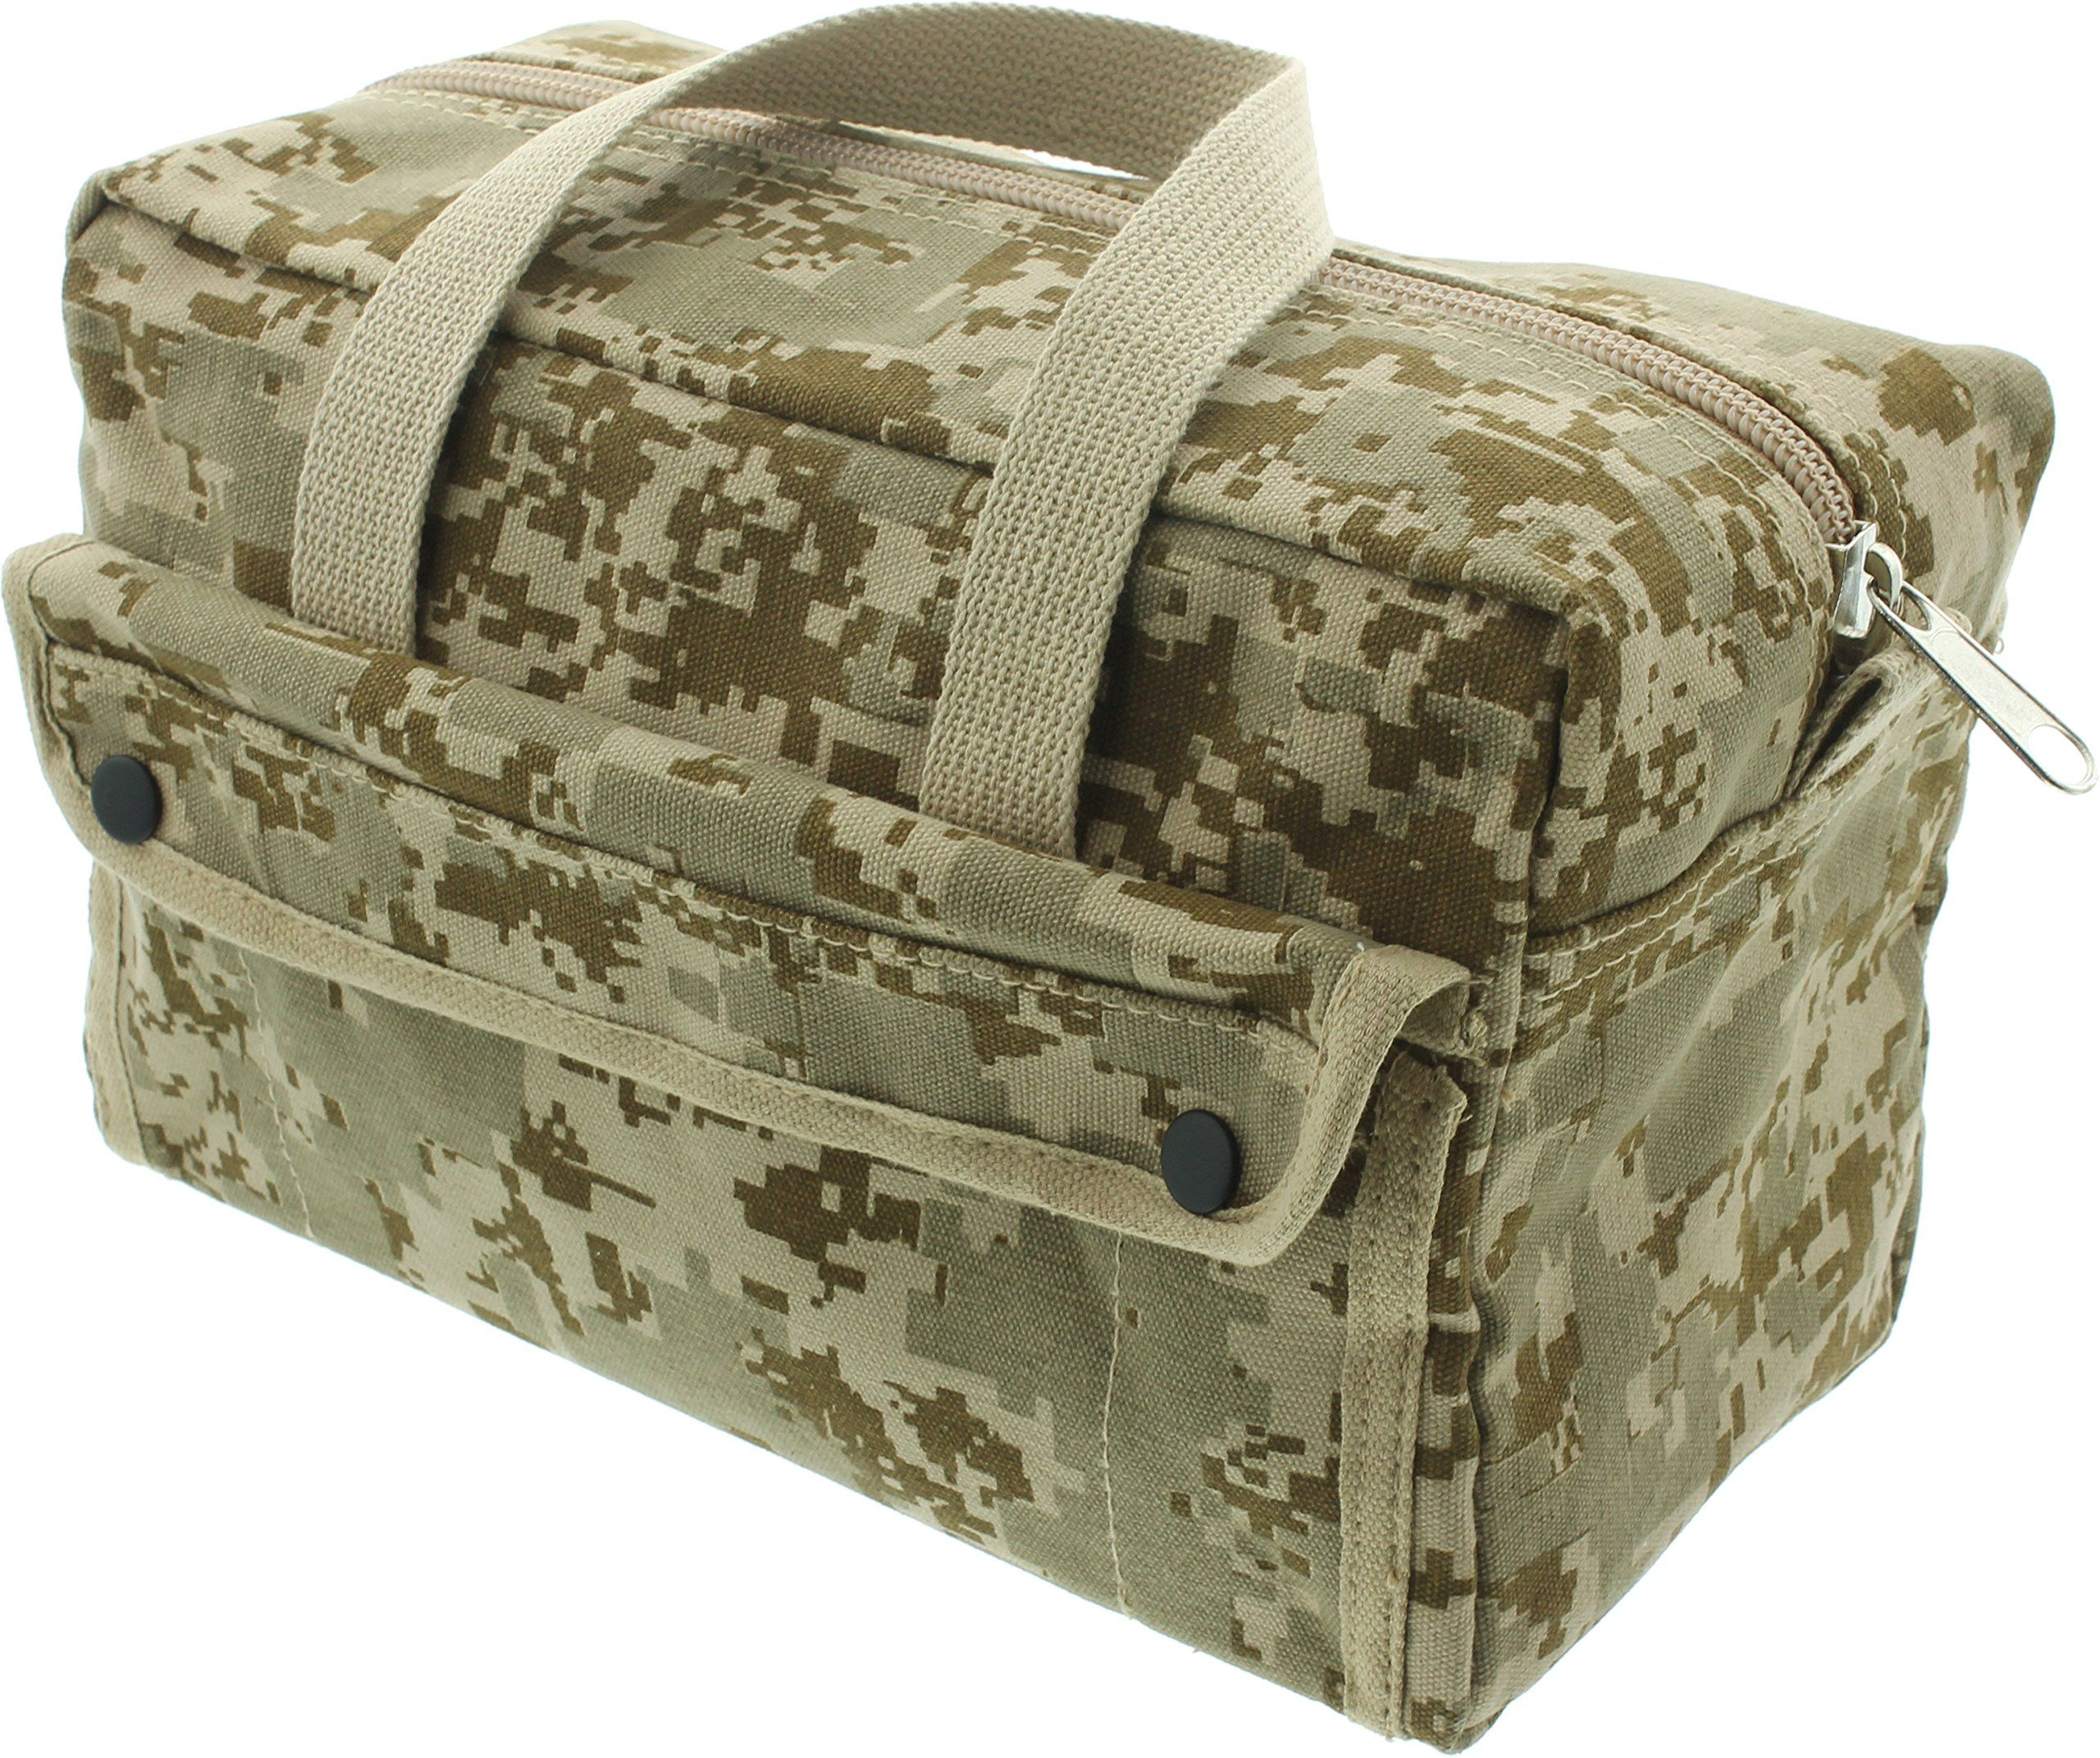 Army Universe Heavy Duty Military Small Mechanics Tool Bag 11 x 7 x 6 by  Desert 1656f413ba0